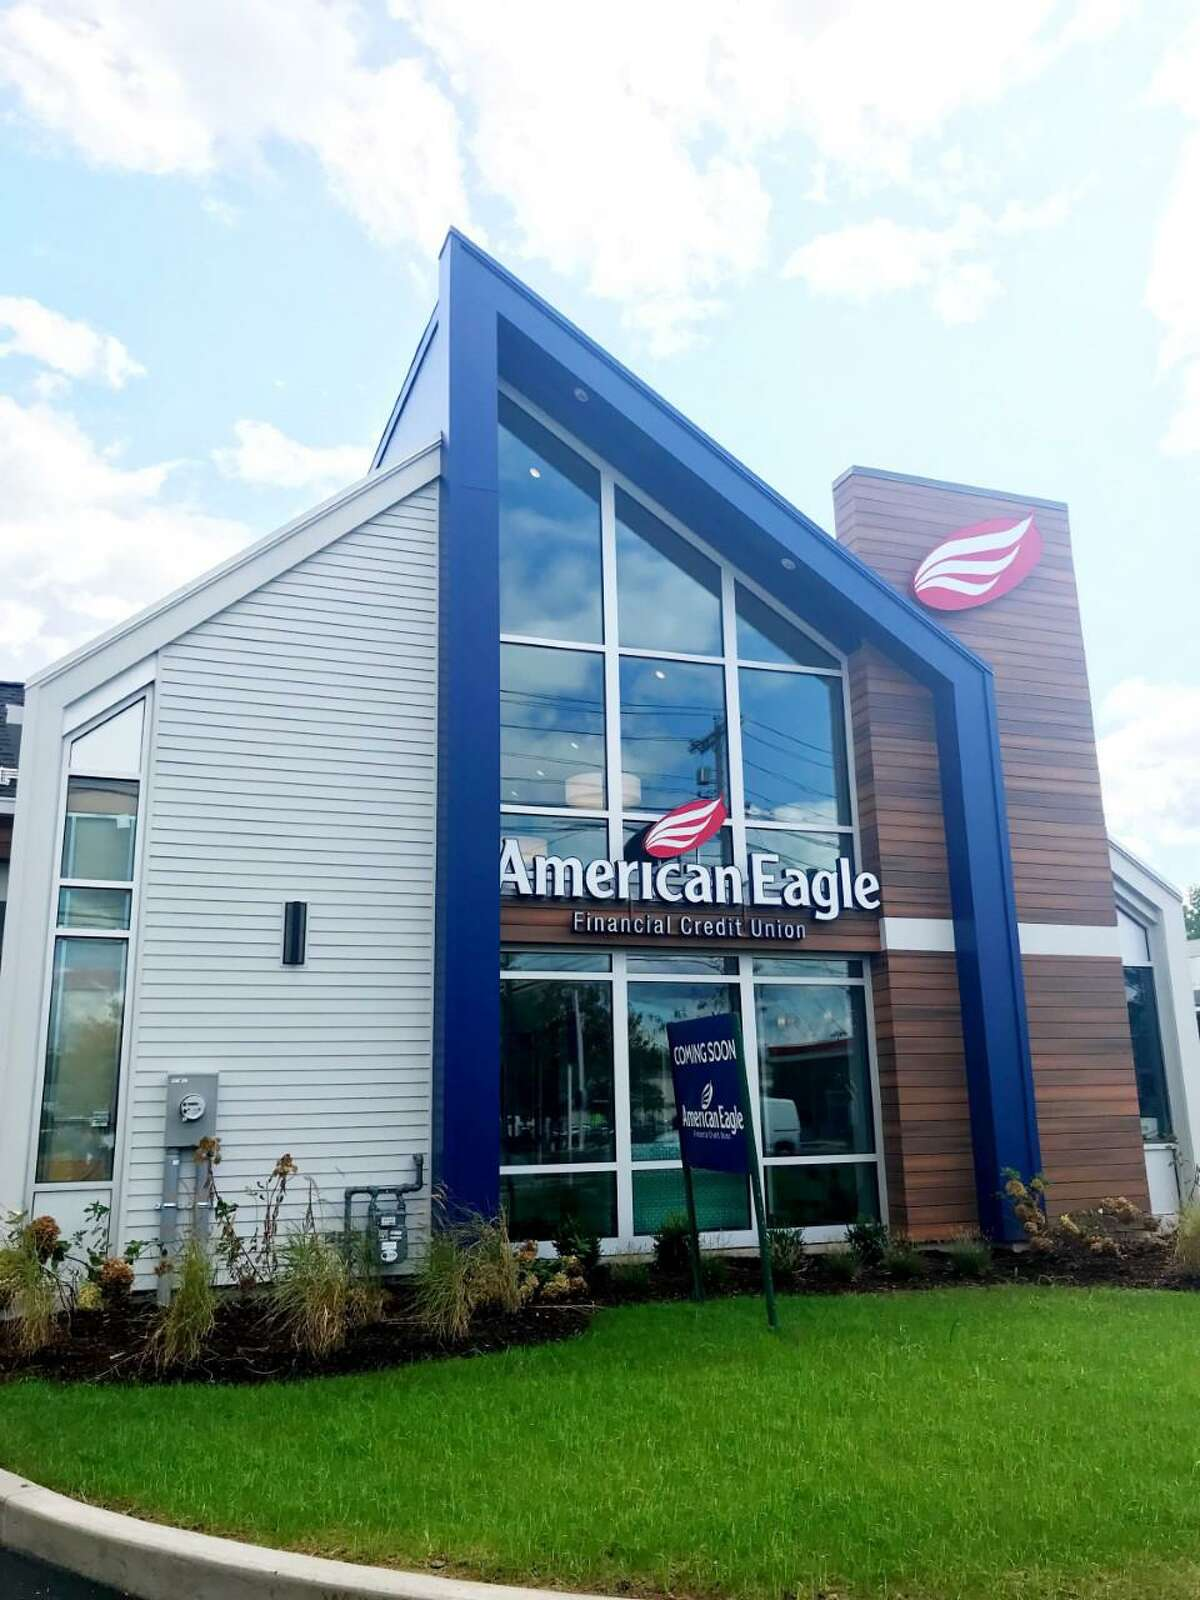 An exterior view of the new American Eagle Federal Credit Union branch on Washington Avenue in North Haven. The branch is American Eagle's first in New Haven County.